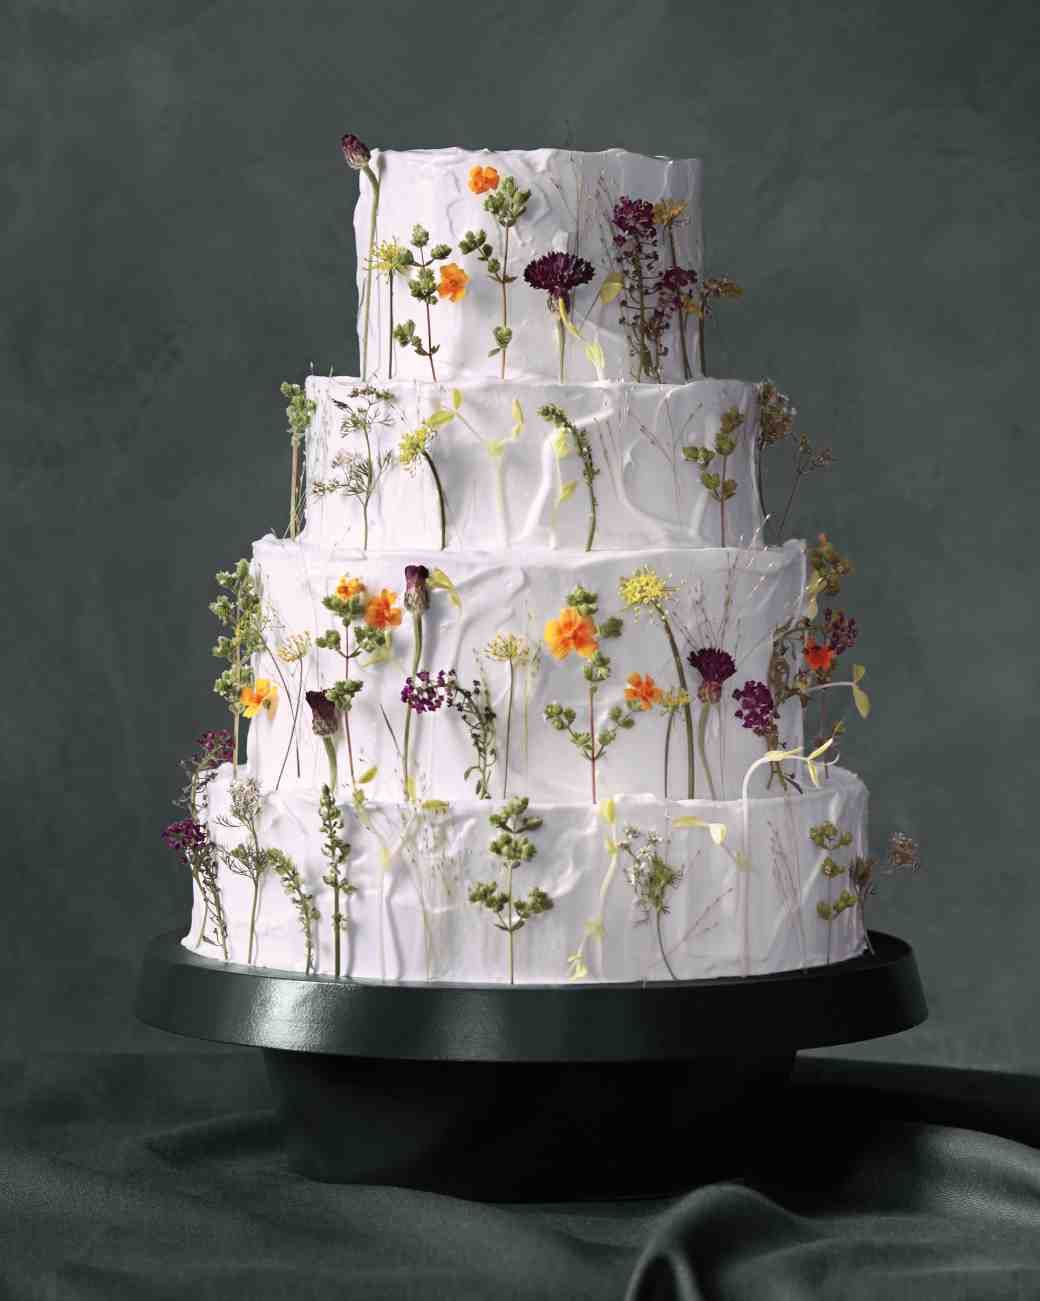 wedding cakes and flowers 6 fresh ways to decorate wedding cakes with flowers 23795